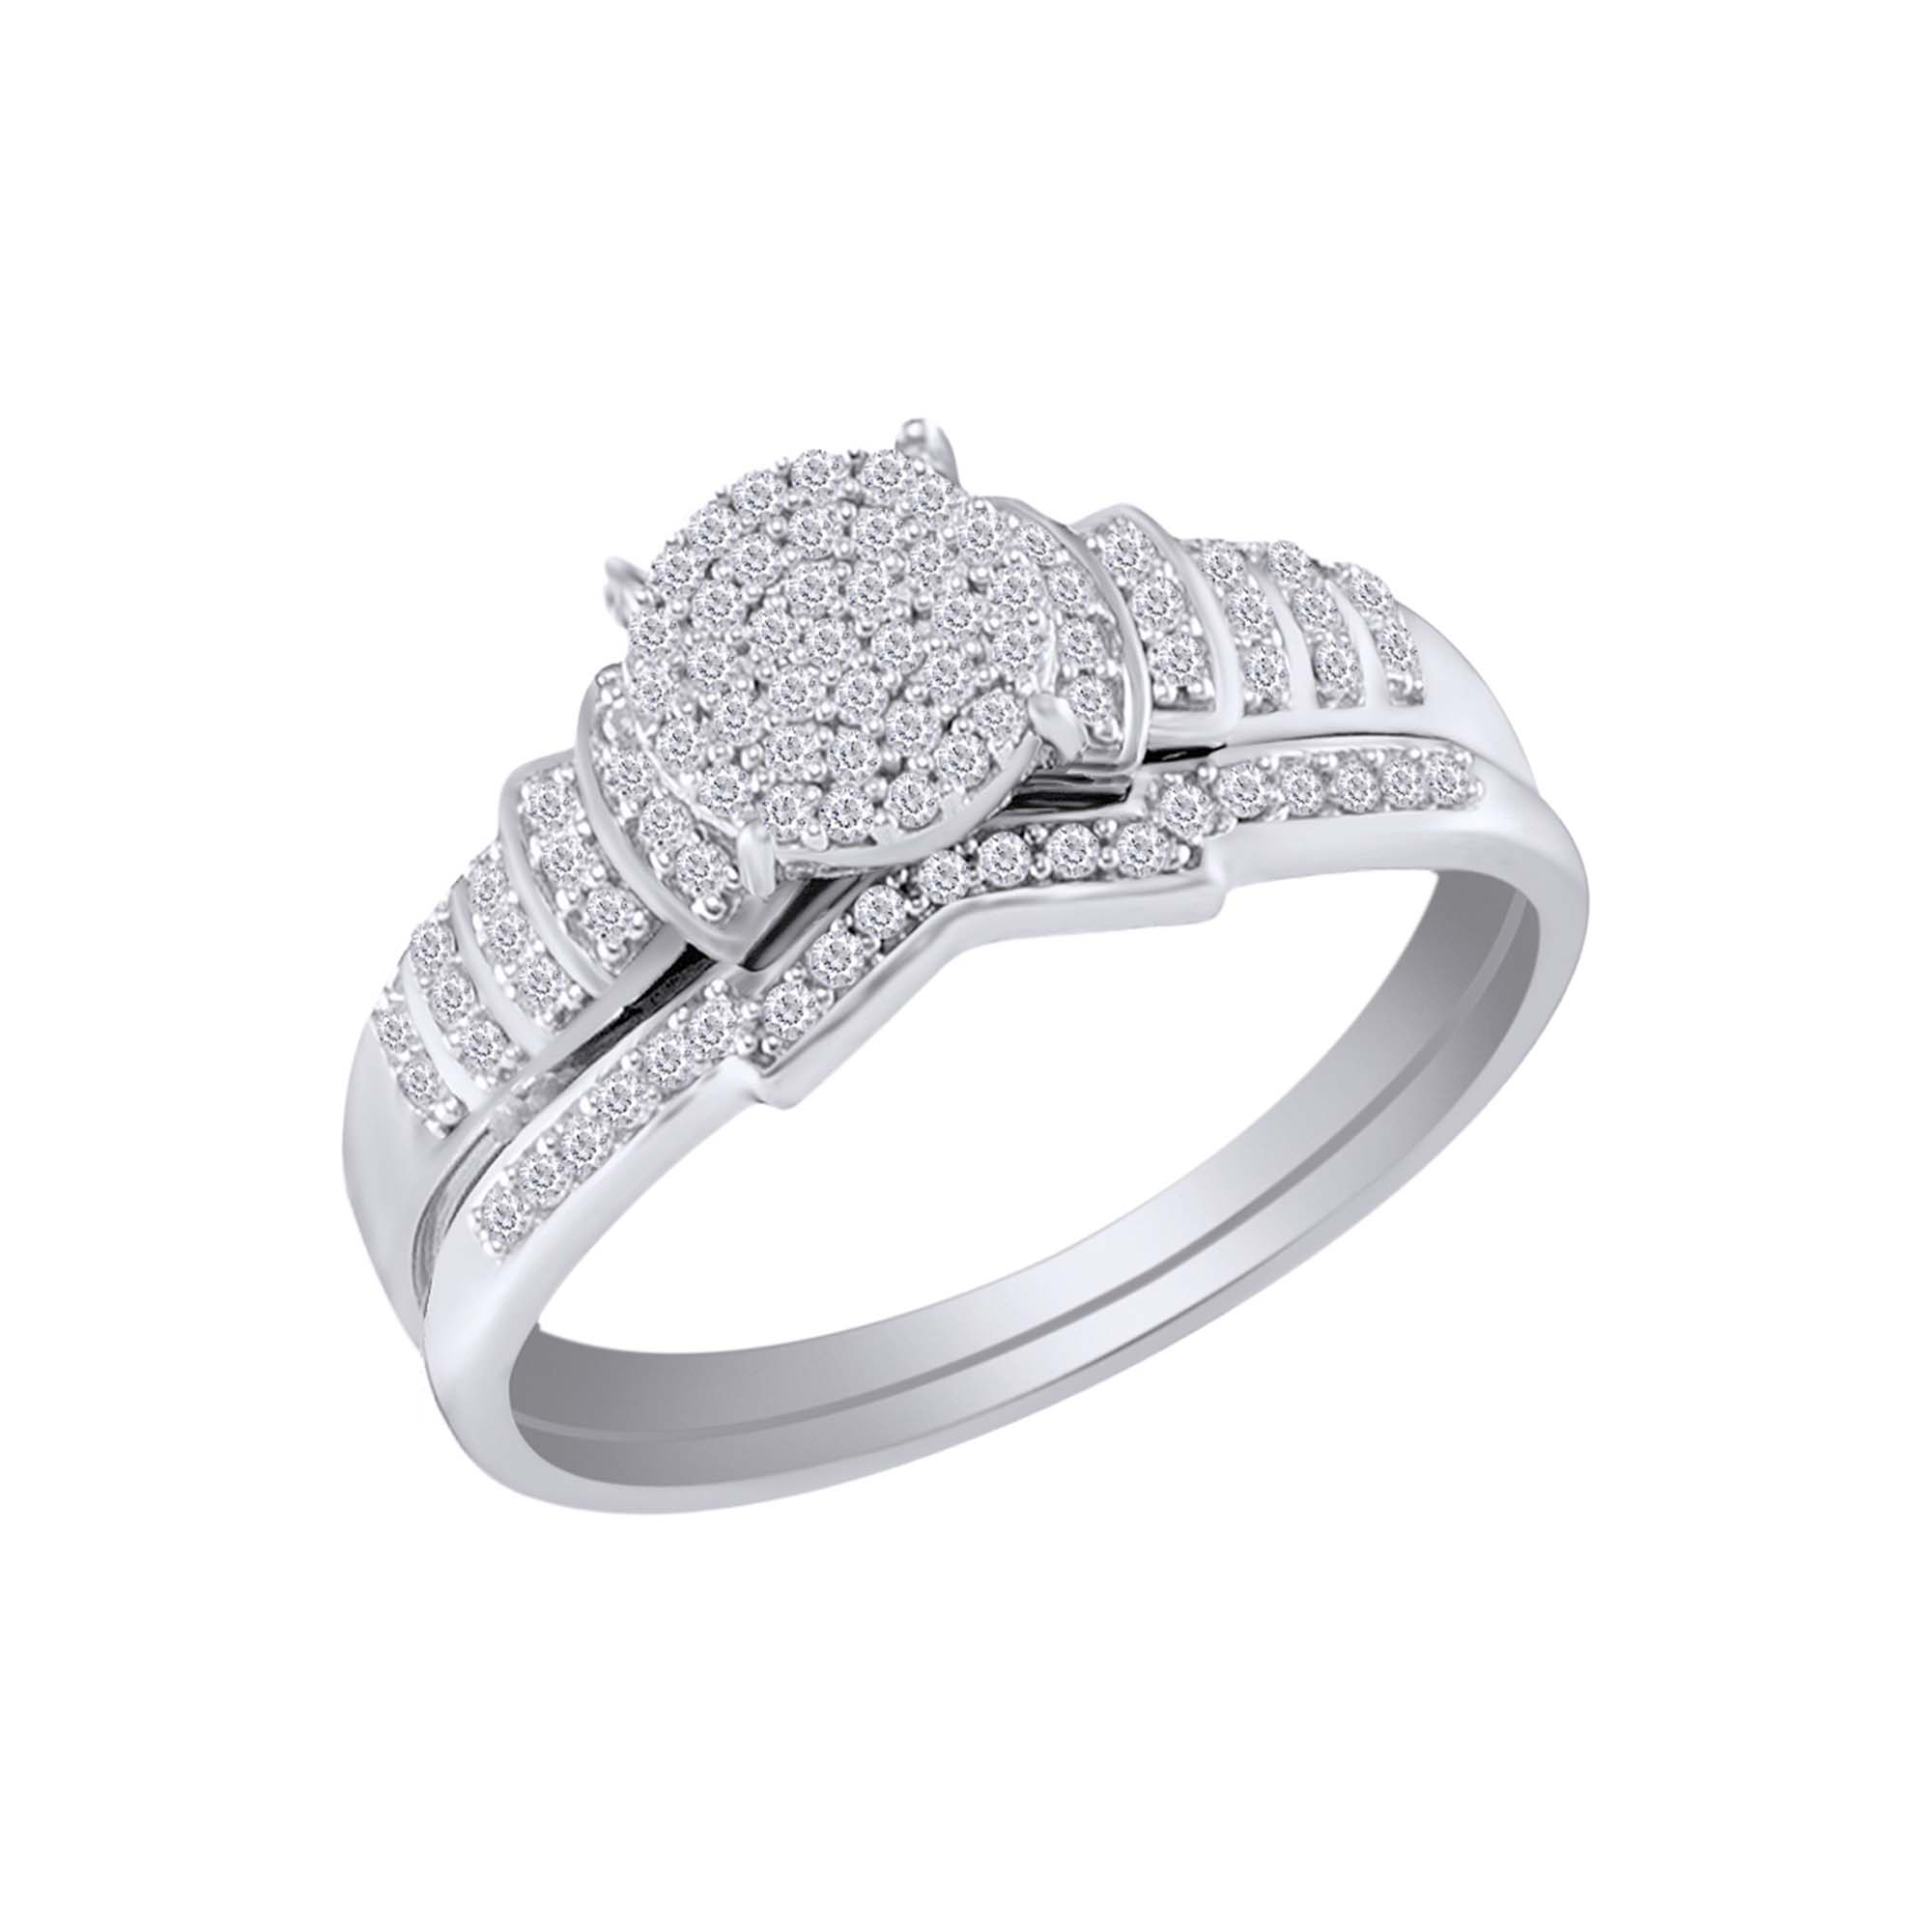 Wishrocks Round Cut White Cubic Zirconia Cluster Ring in 14K White Gold Over Sterling Silver